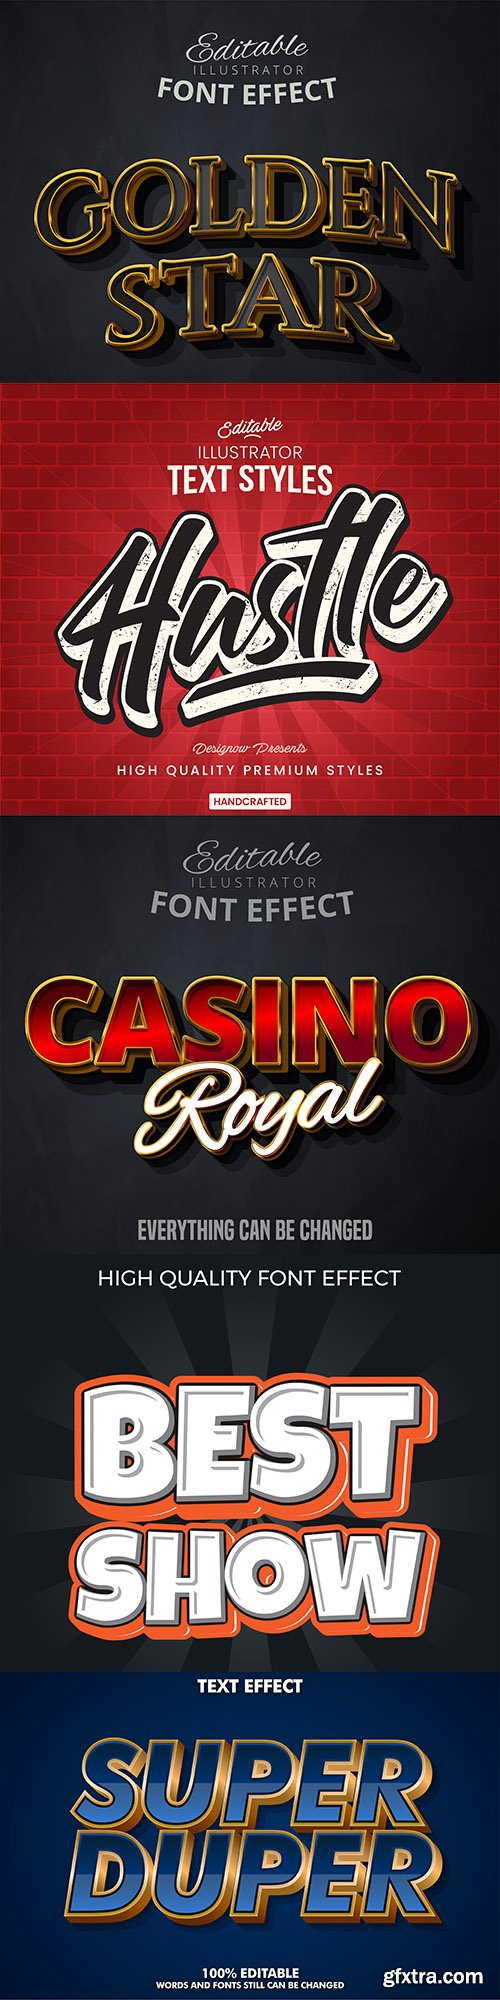 3d font effect style collection illustration 5